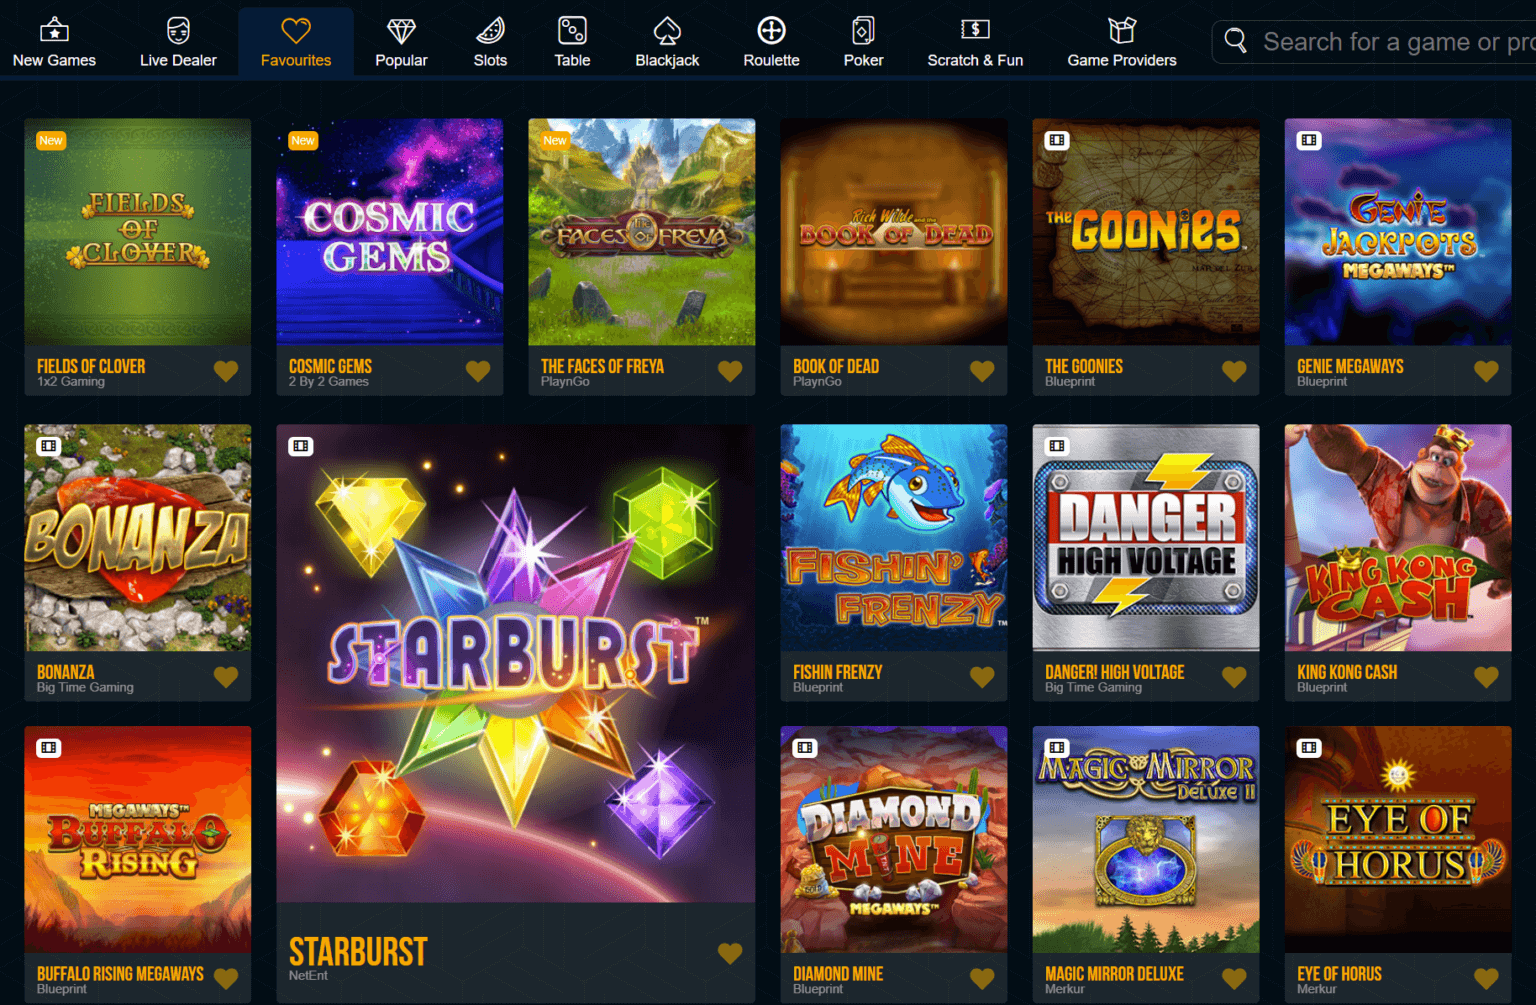 A screenshot showing some of the excellent online slots you can play at The Grand Ivy casino